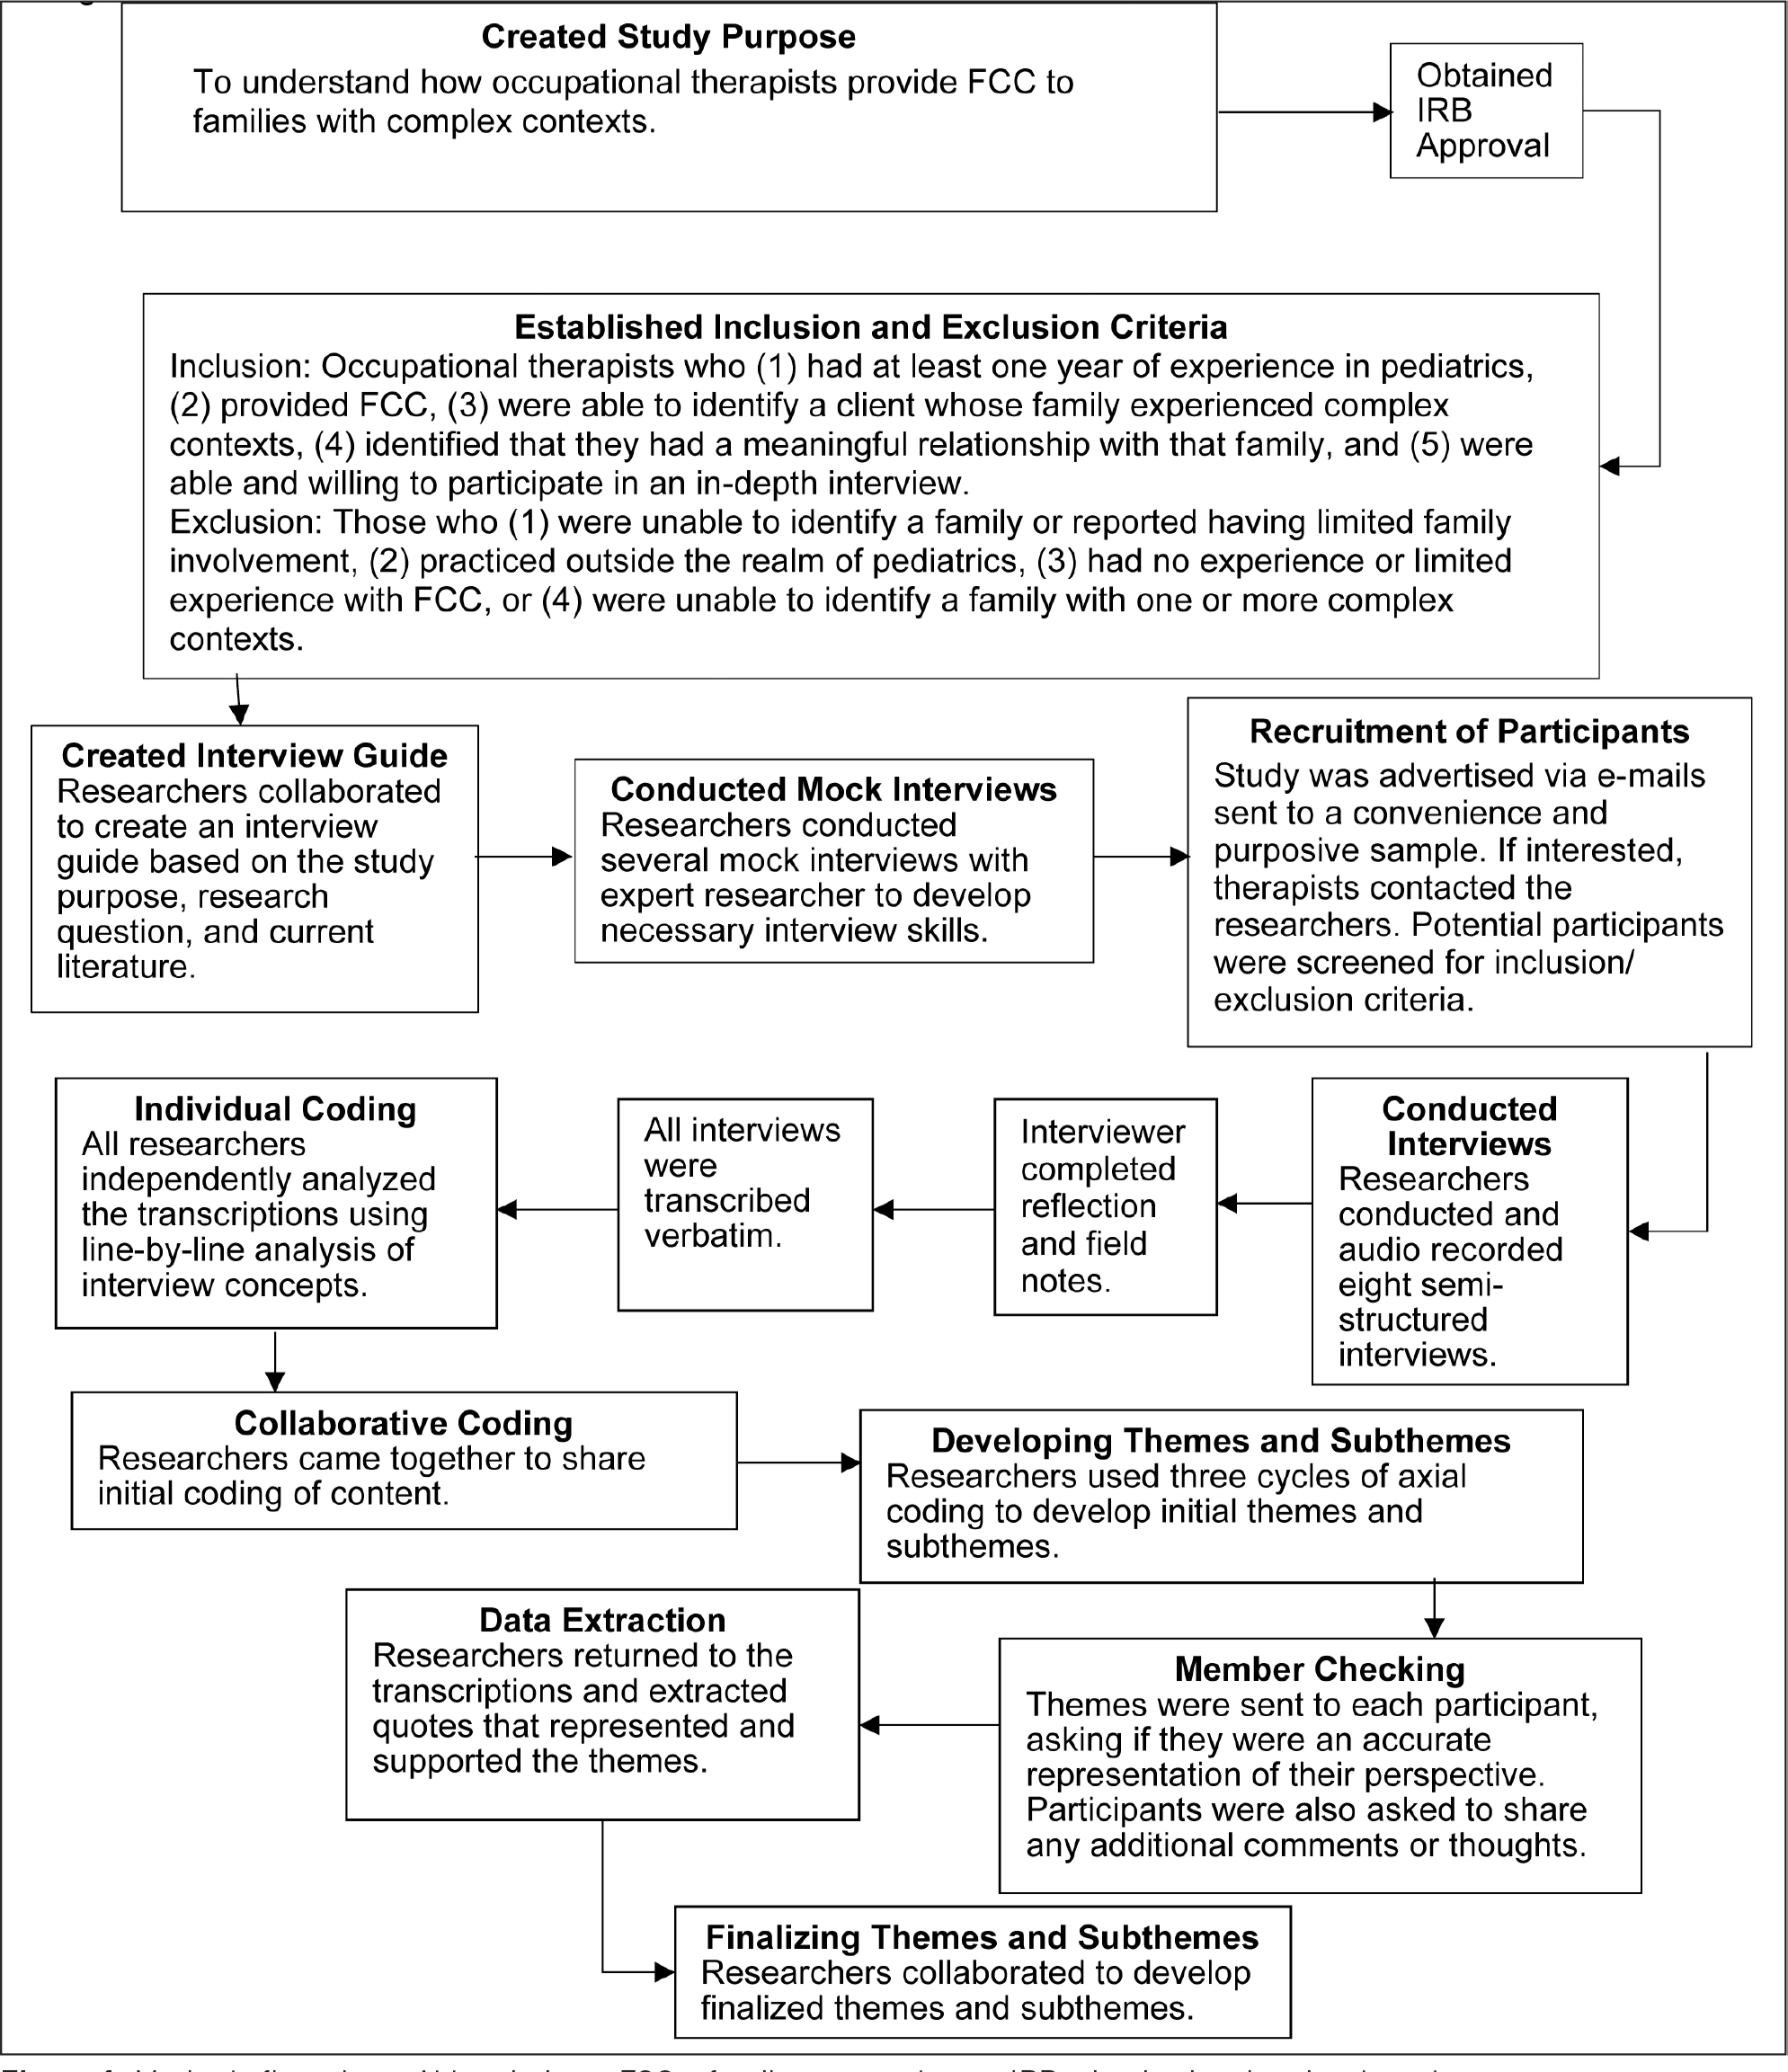 Methods flow chart. Abbreviations: FCC = family-centered care; IRB = institutional review board.